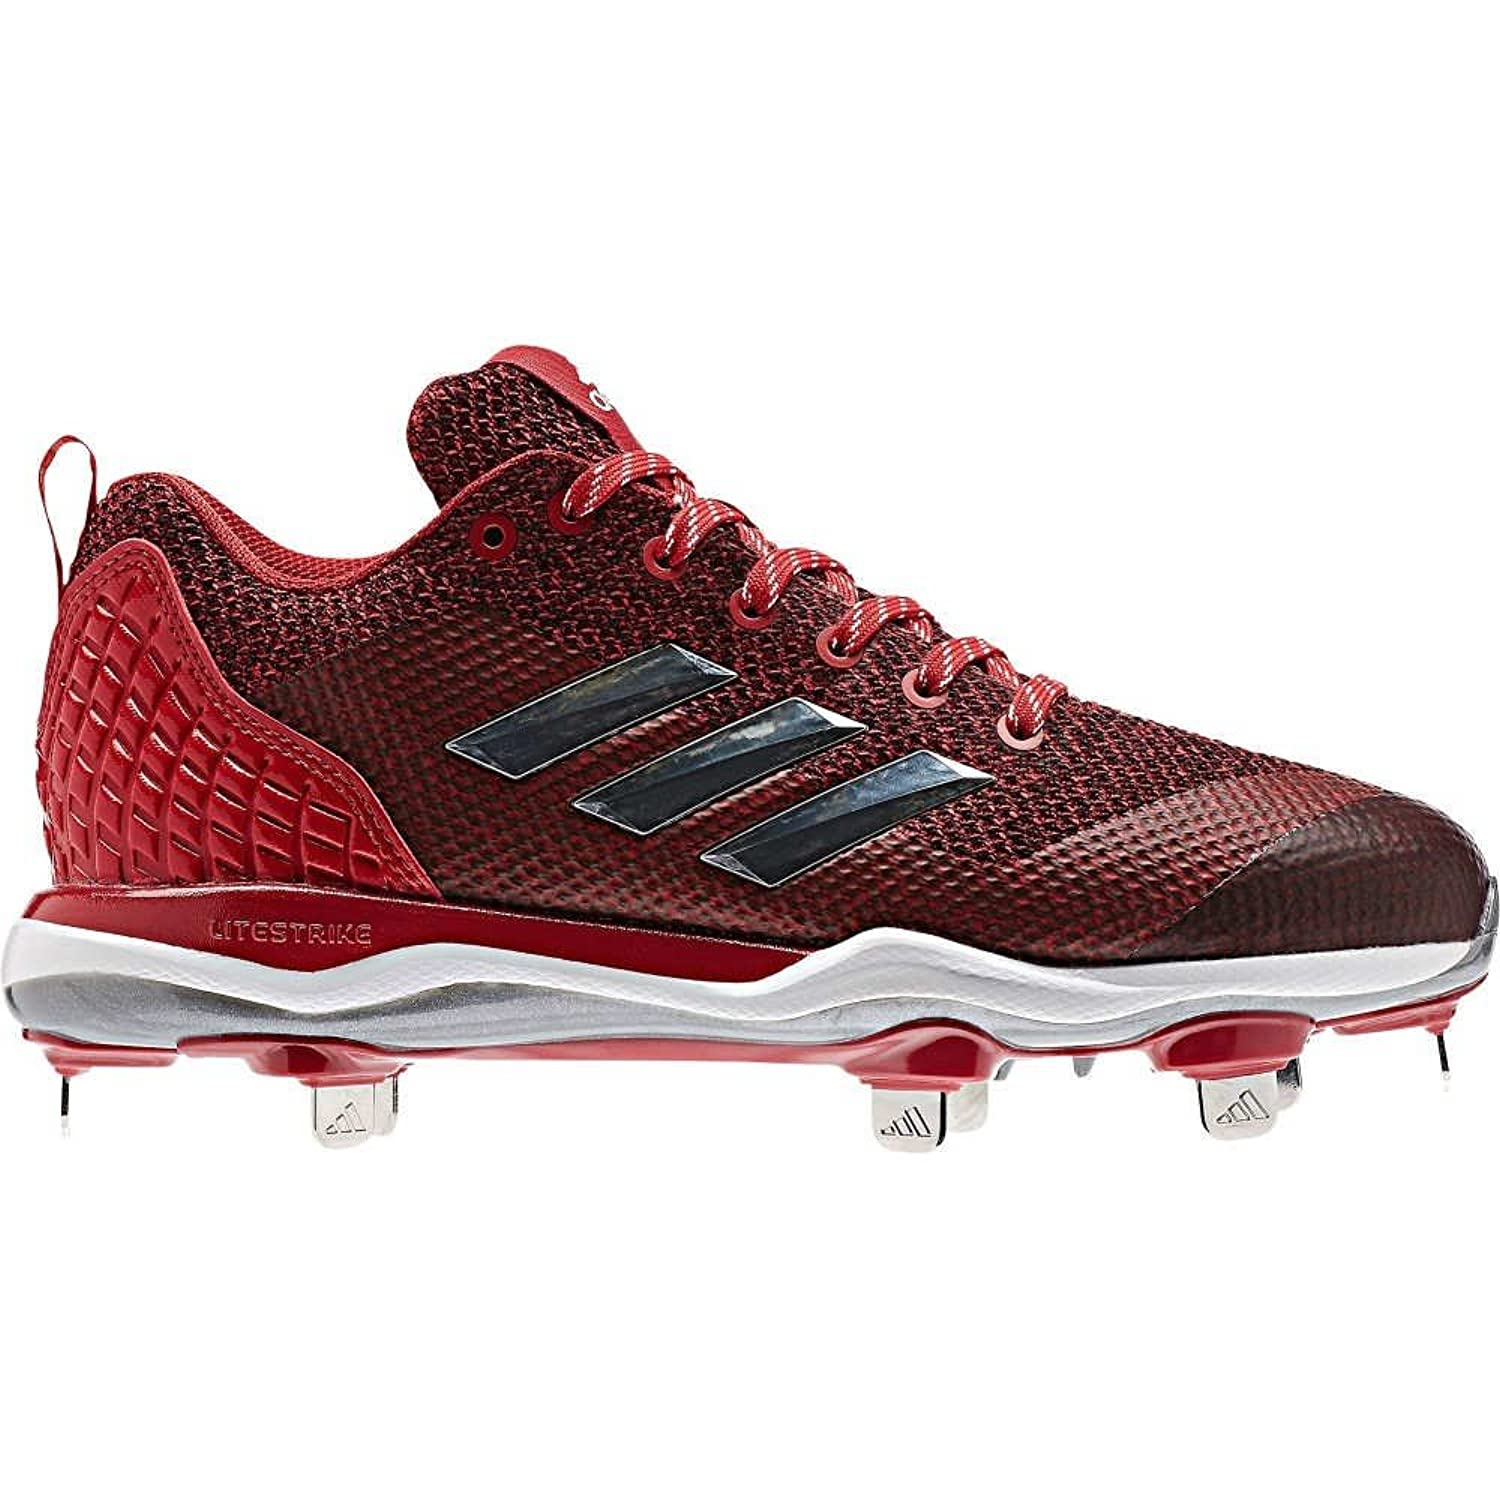 (アディダス) adidas レディース 野球 シューズ靴 adidas Poweralley 5 Metal Fast-Pitch Softball Cleats [並行輸入品] B0785L82B17.5-Medium